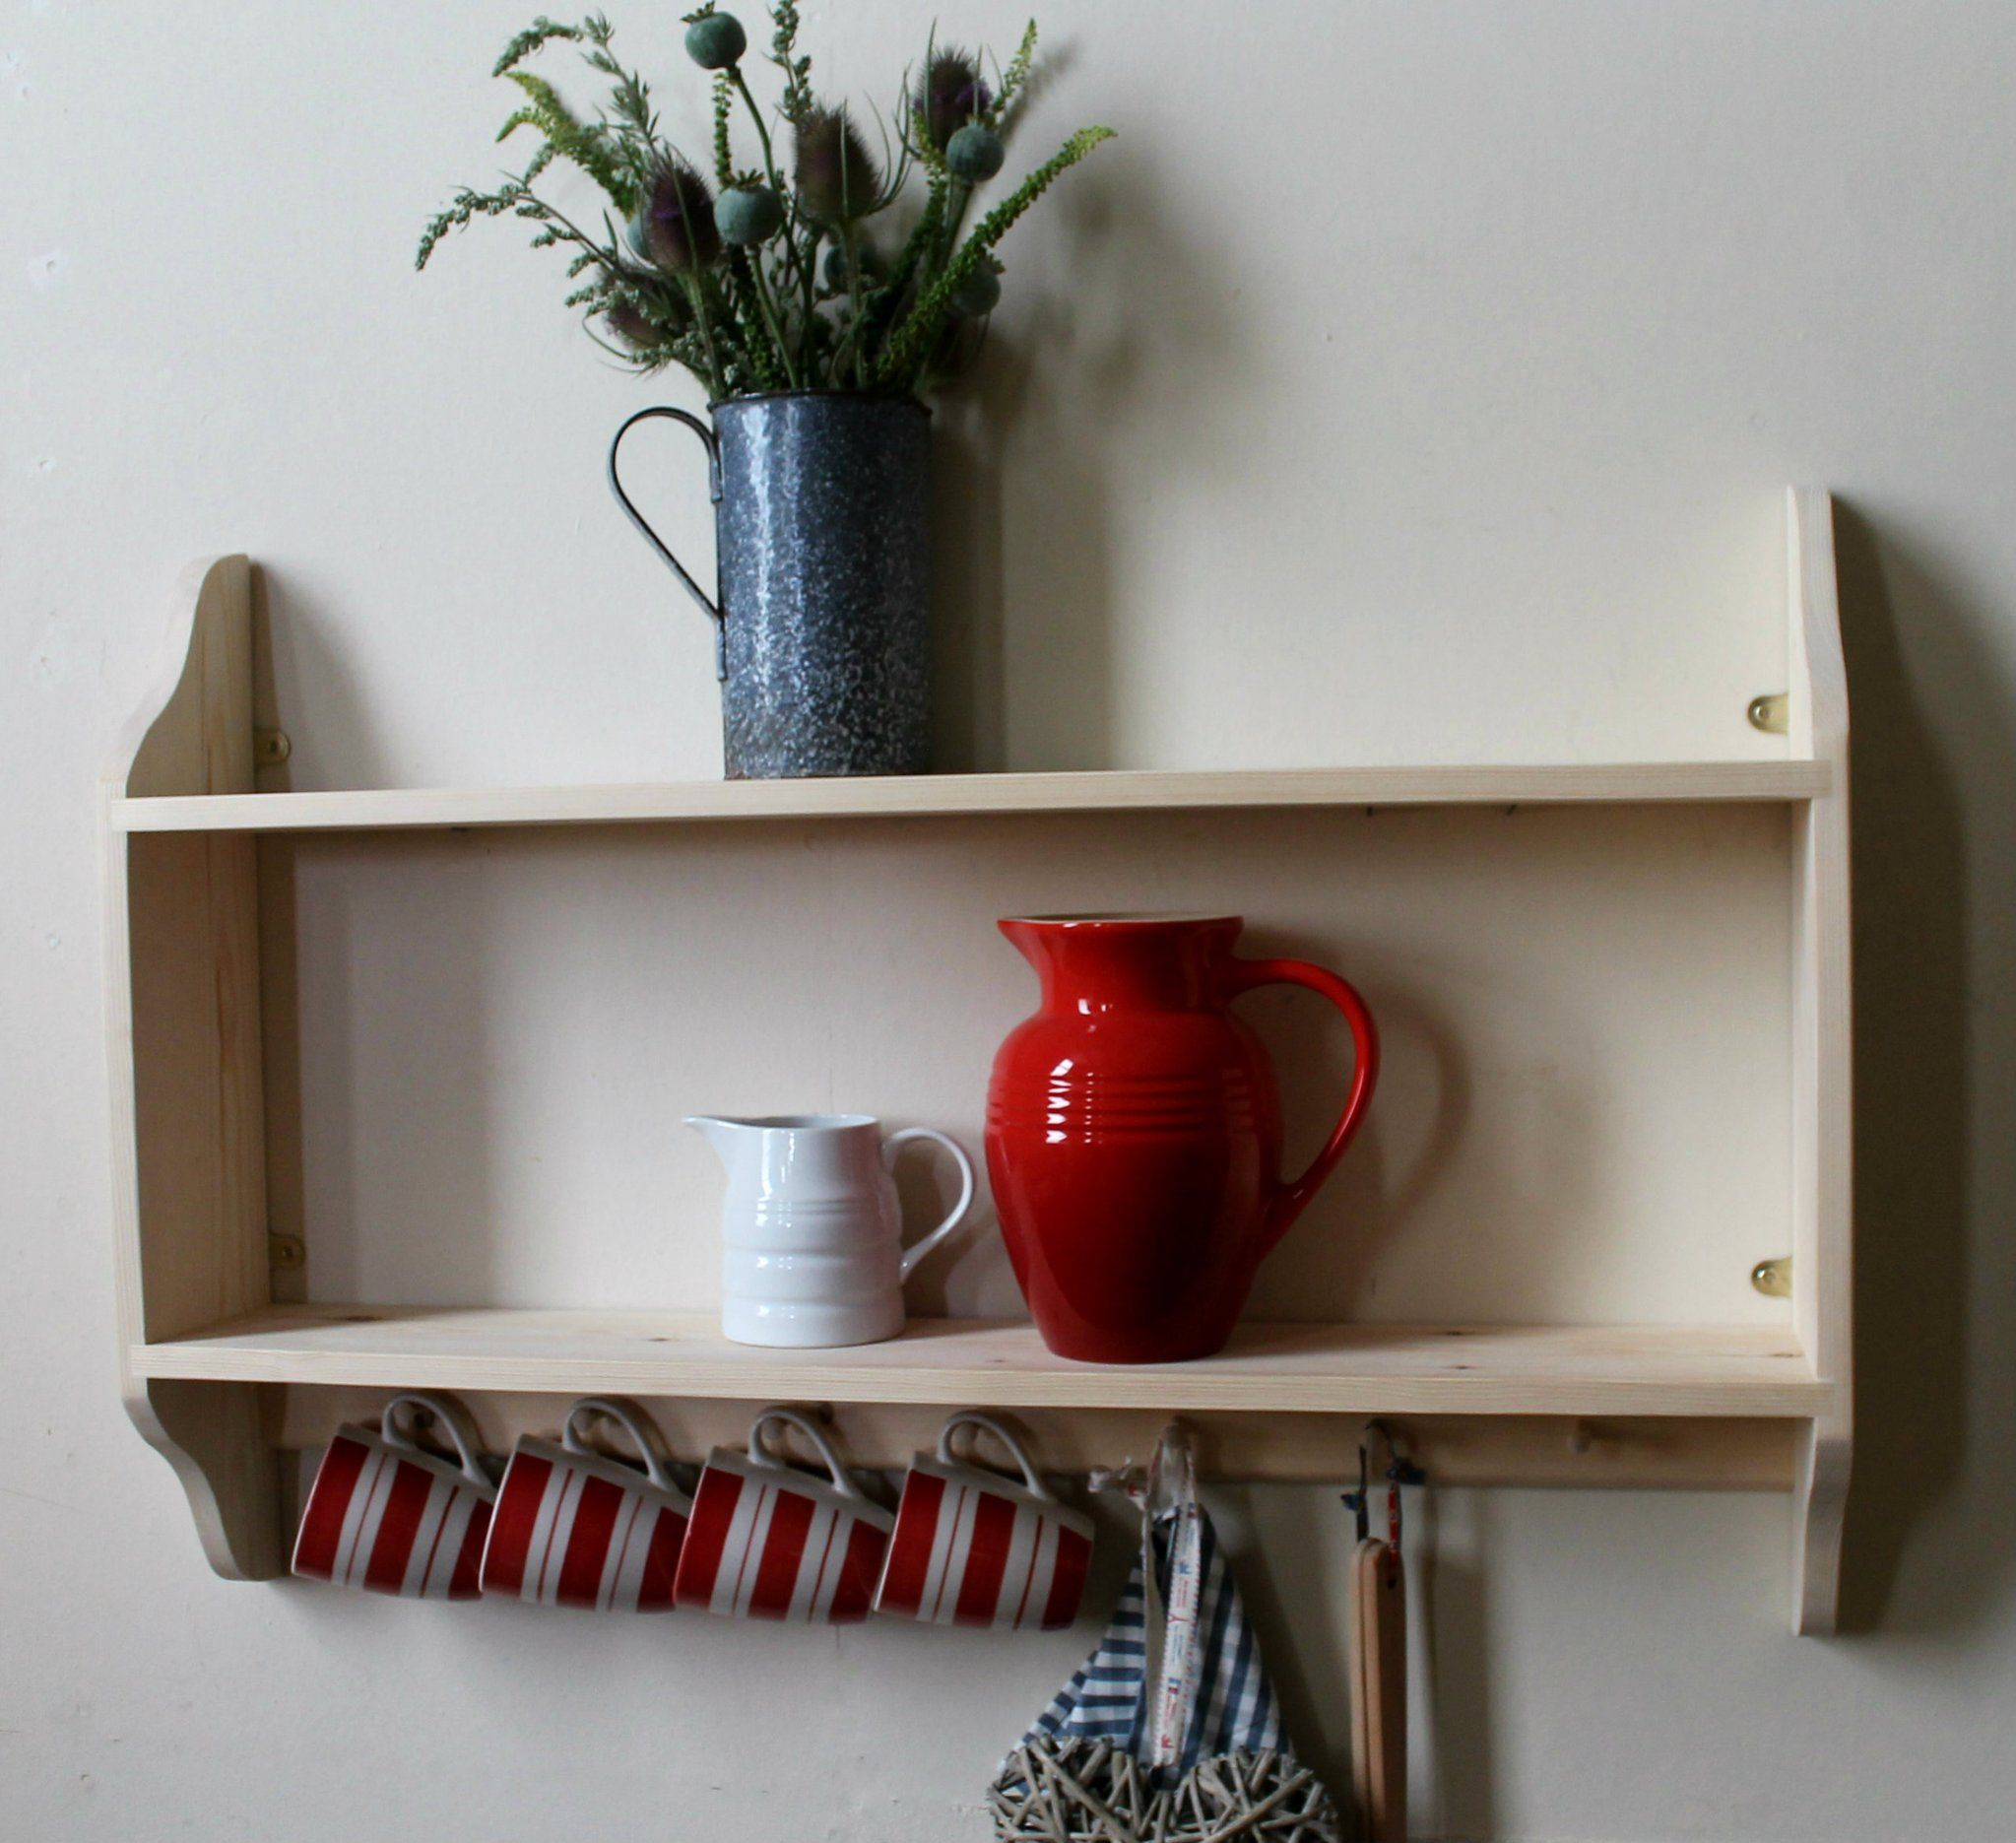 ADORA 2 with Shakers pegs Shelves, Wall shelving units